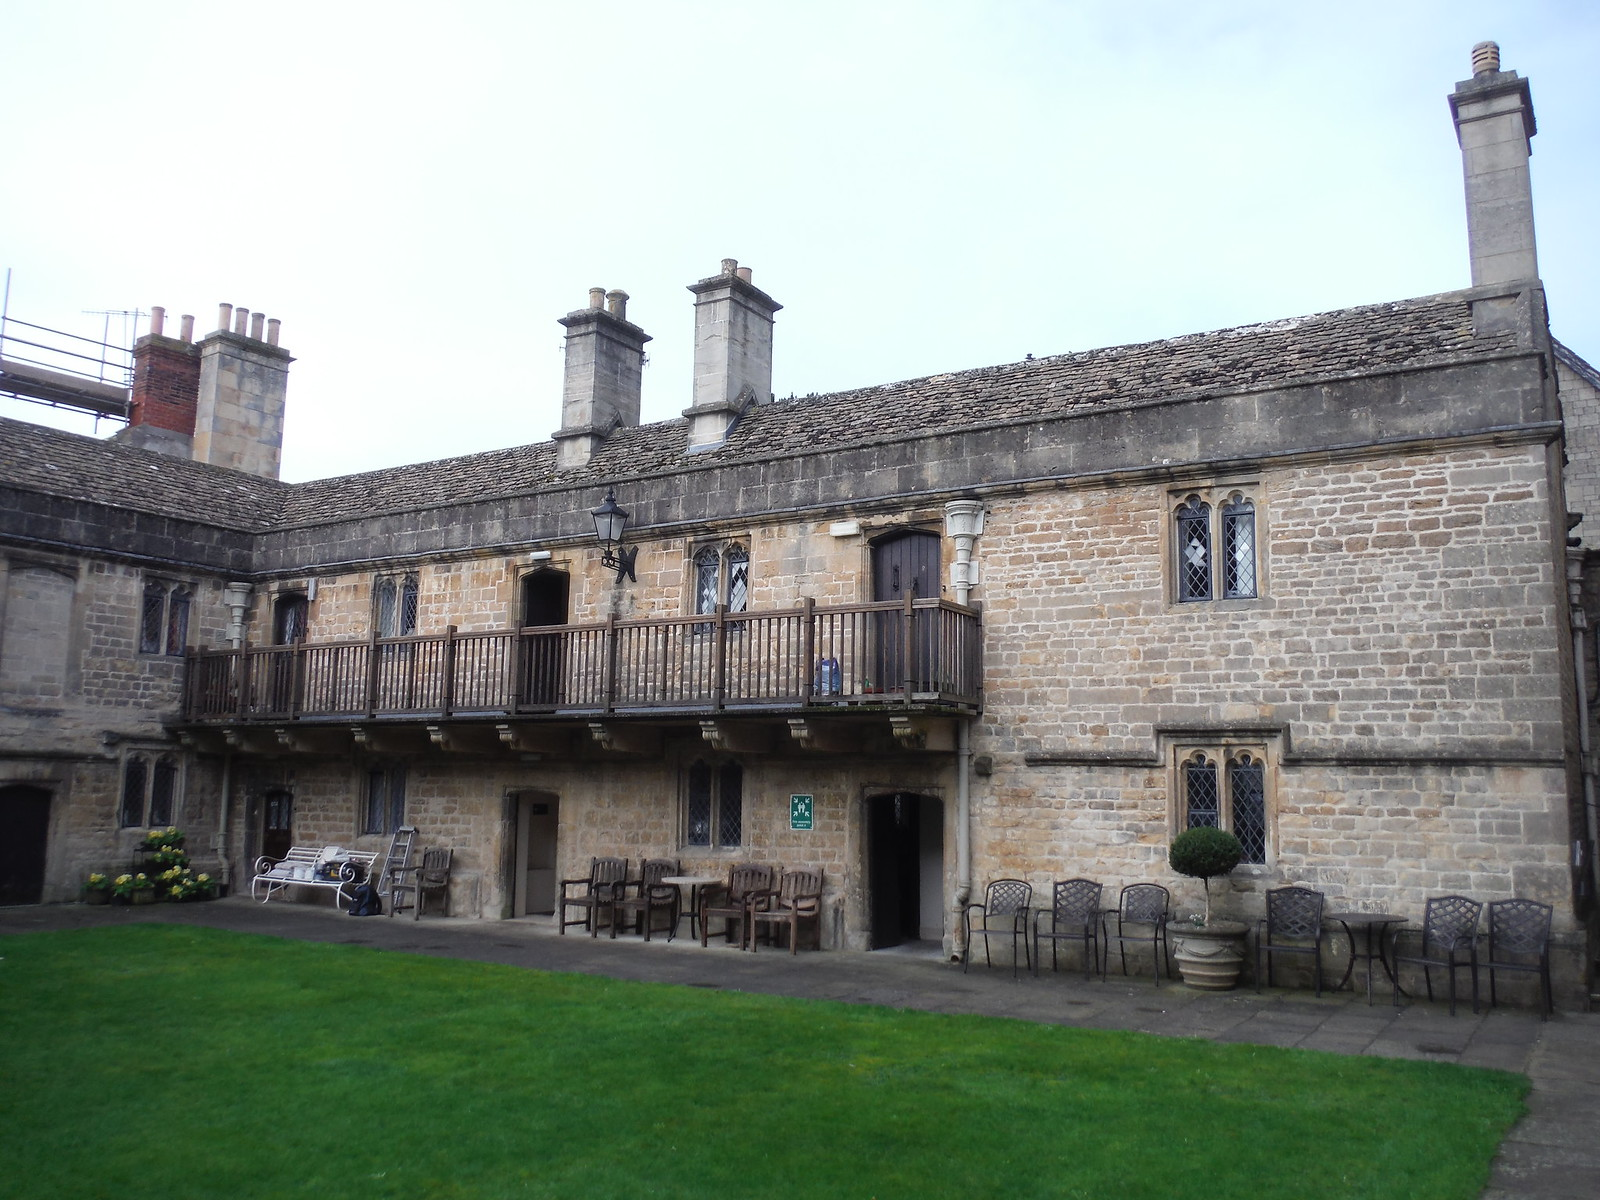 Sexey's Hospital, Almshouses SWC Walk 284 Bruton Circular (via Hauser & Wirth Somerset) or from Castle Cary